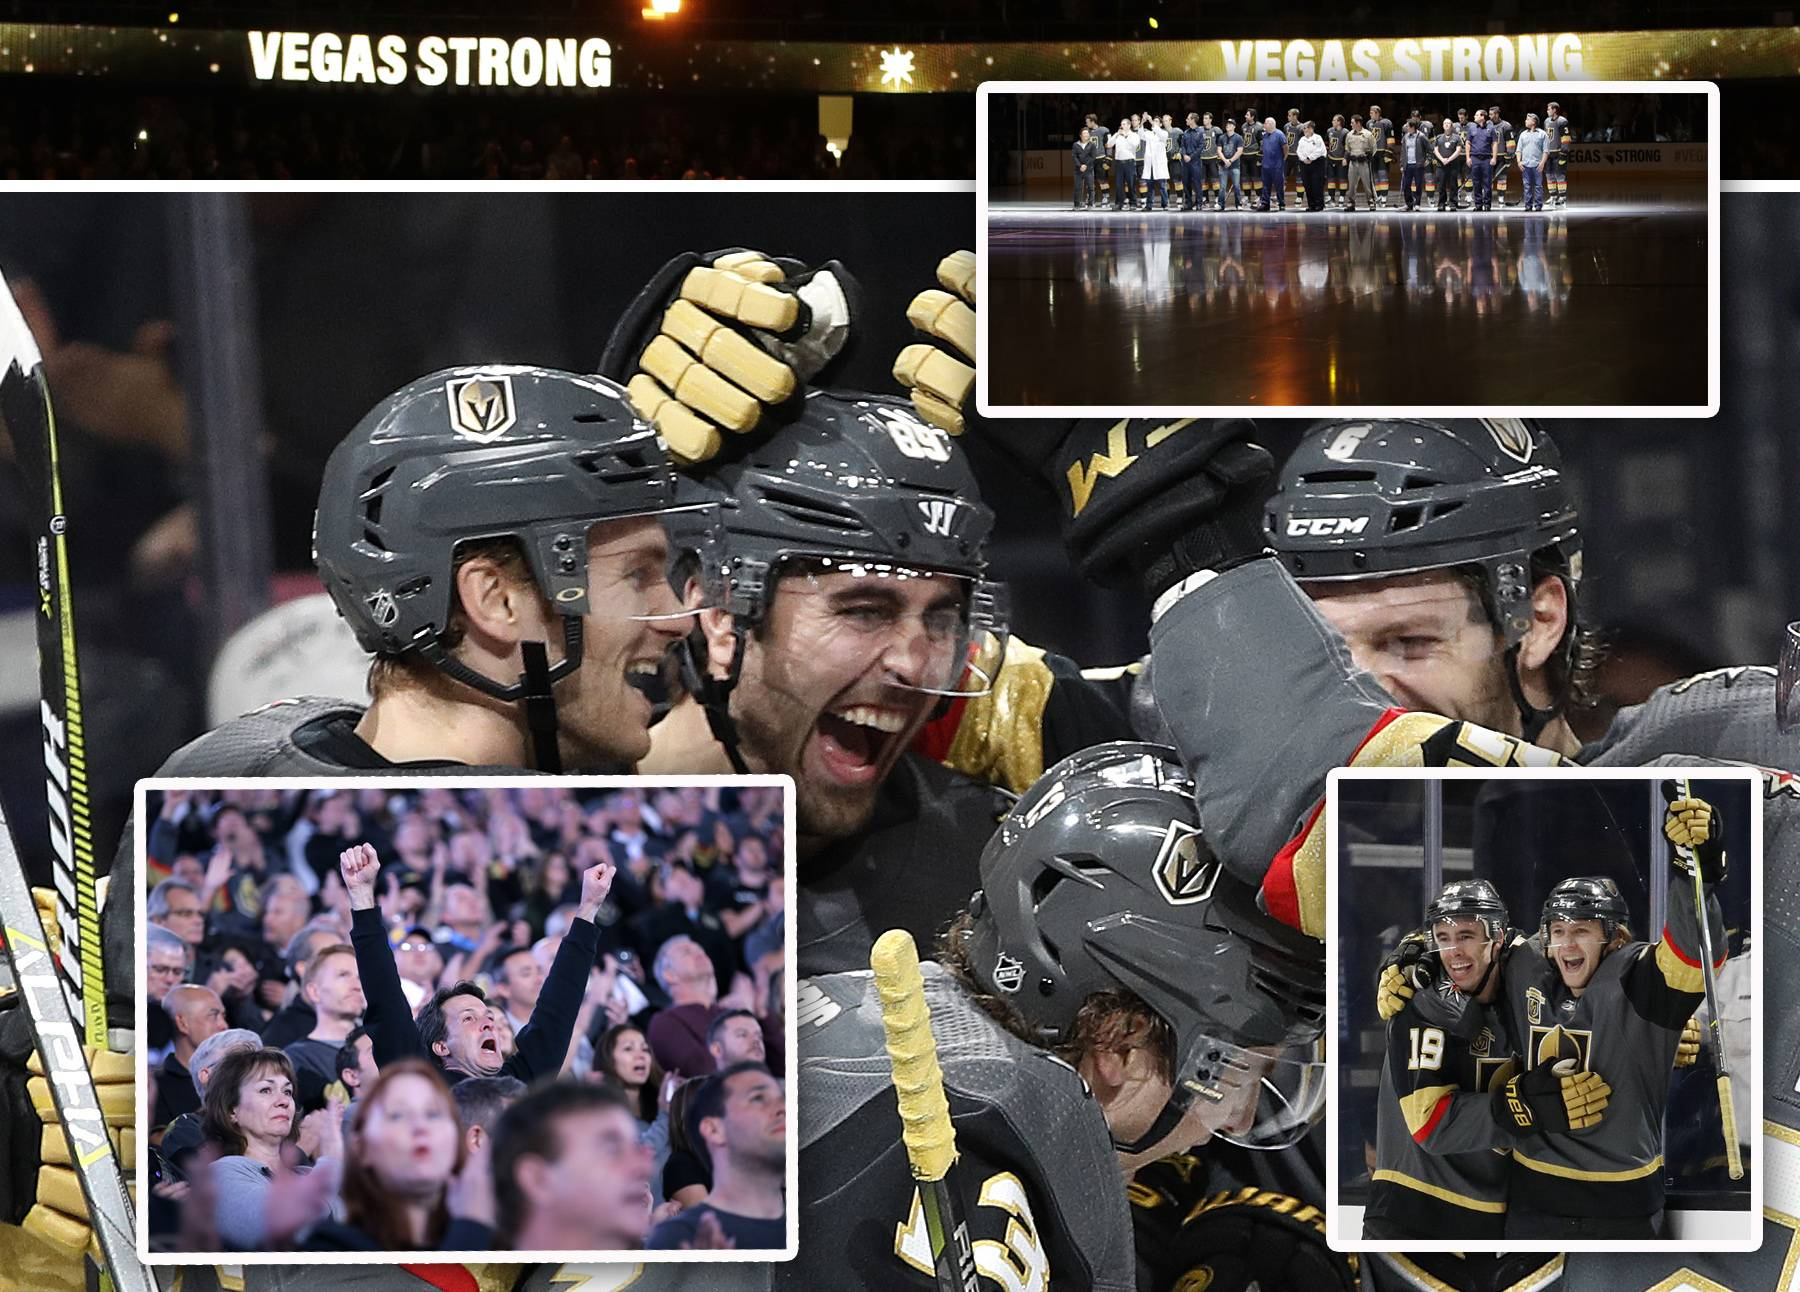 The upstart Vegas Golden Knights are providing thrills in their inaugural NHL season.